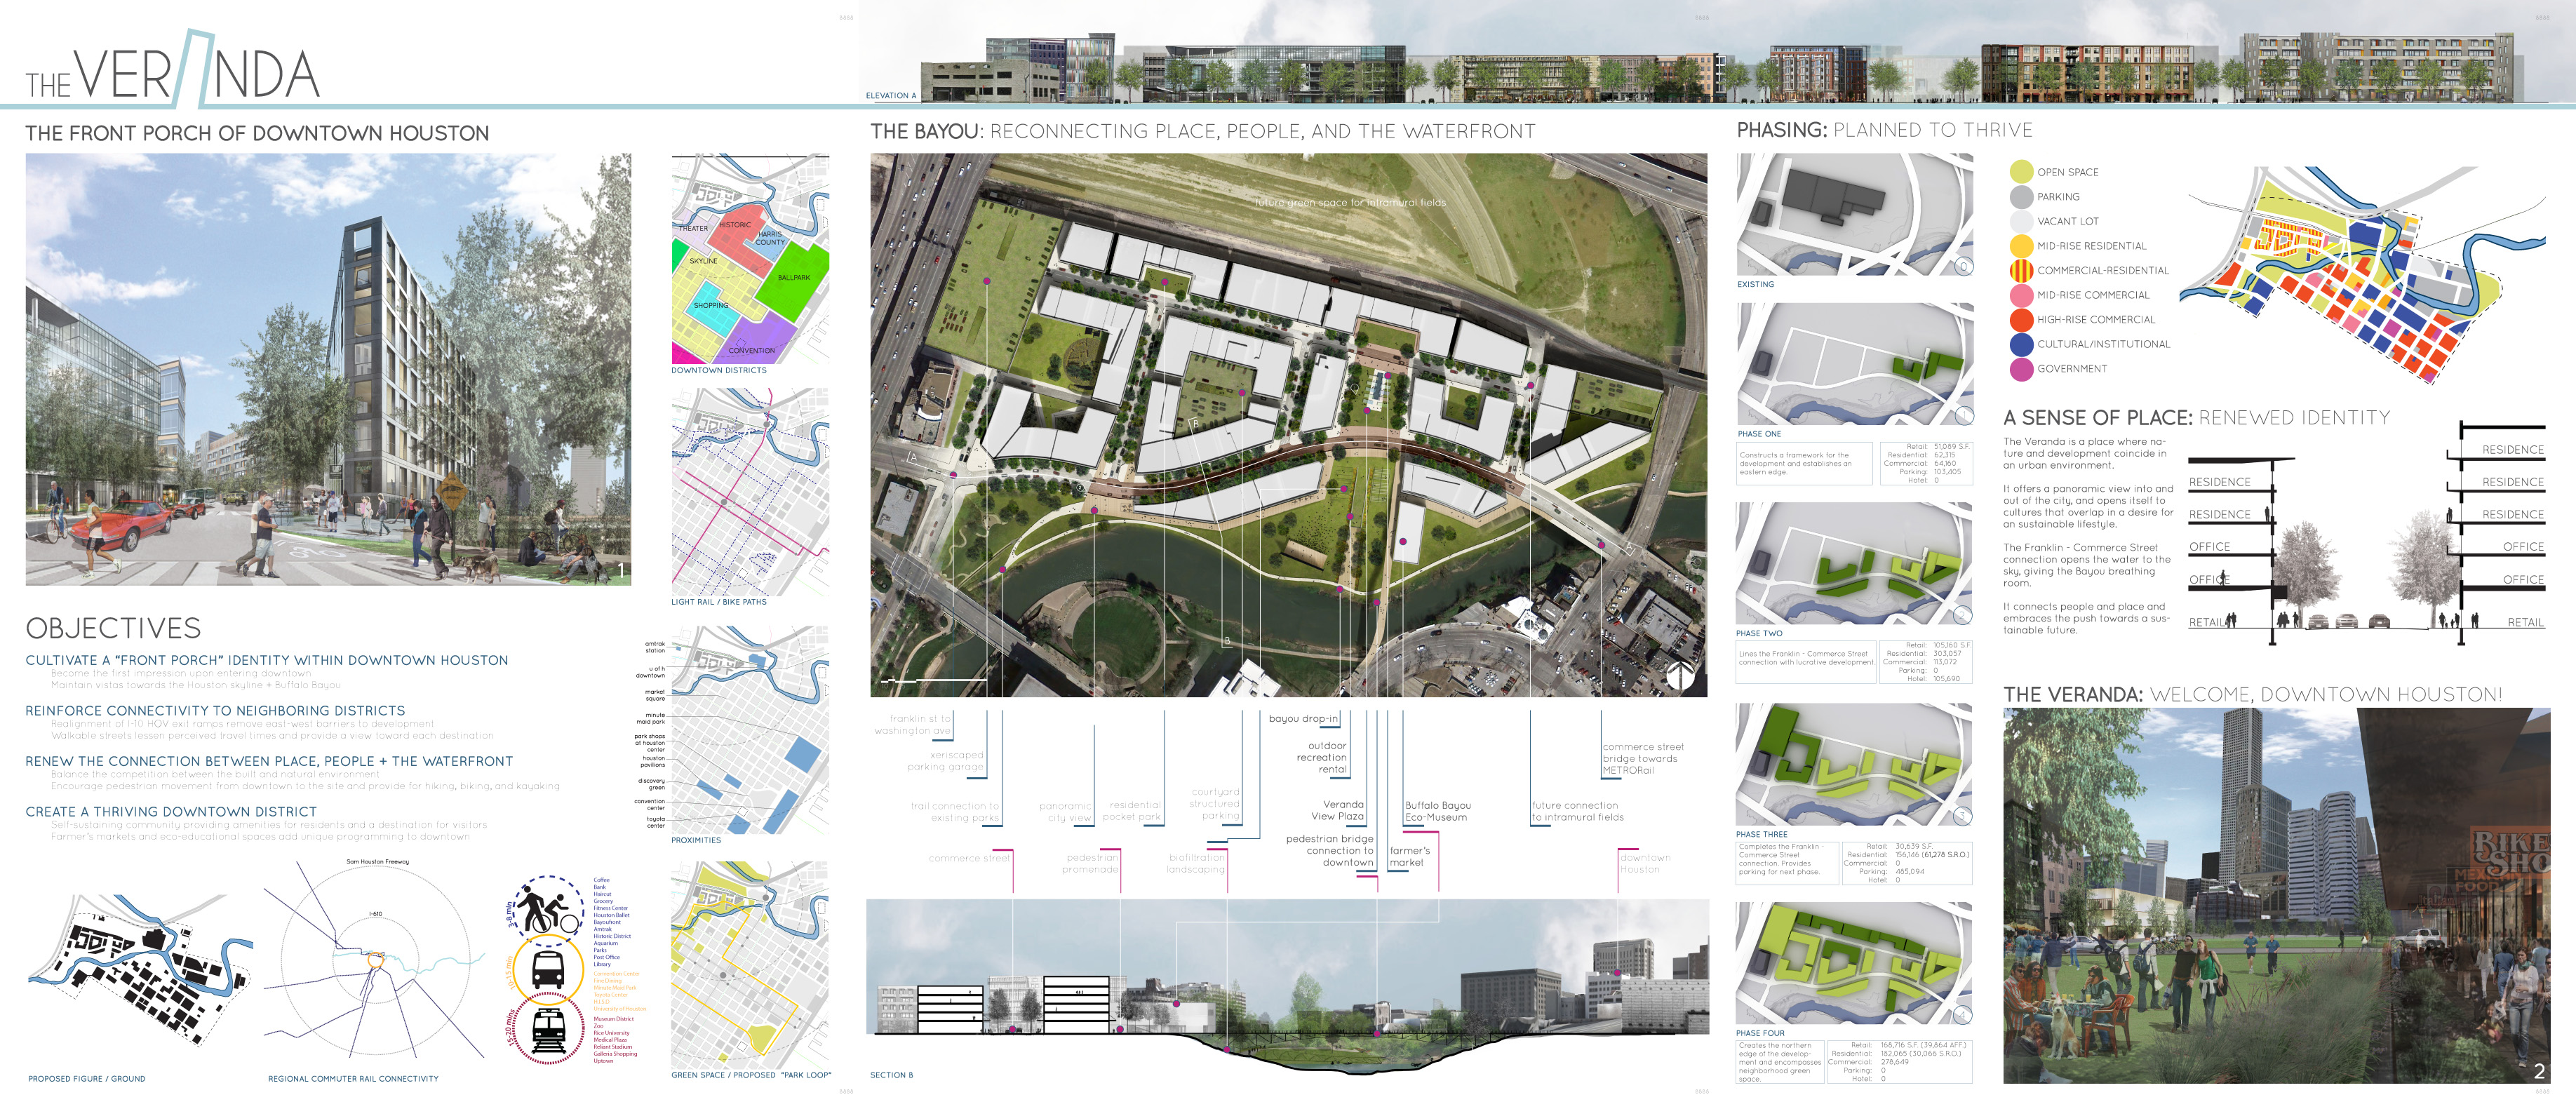 Urban design rhinos and urban on pinterest for Landscape design competition